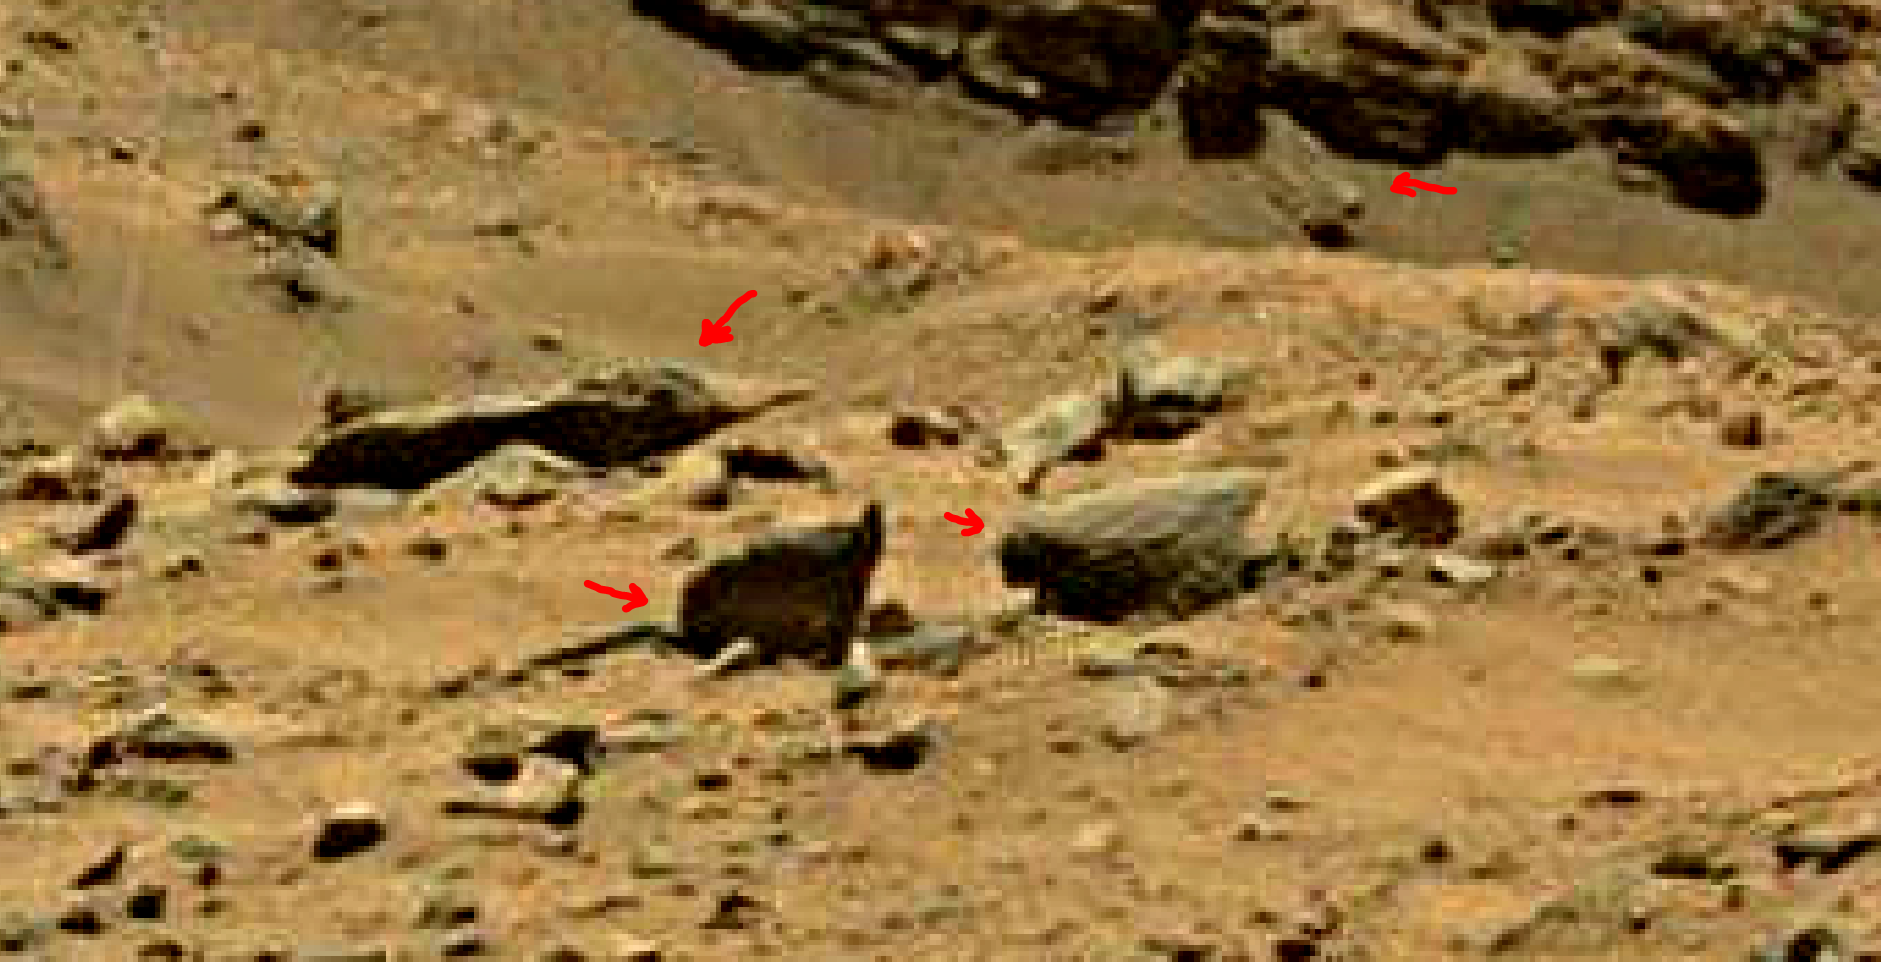 mars sol 1399 anomaly artifacts 12a was life on mars